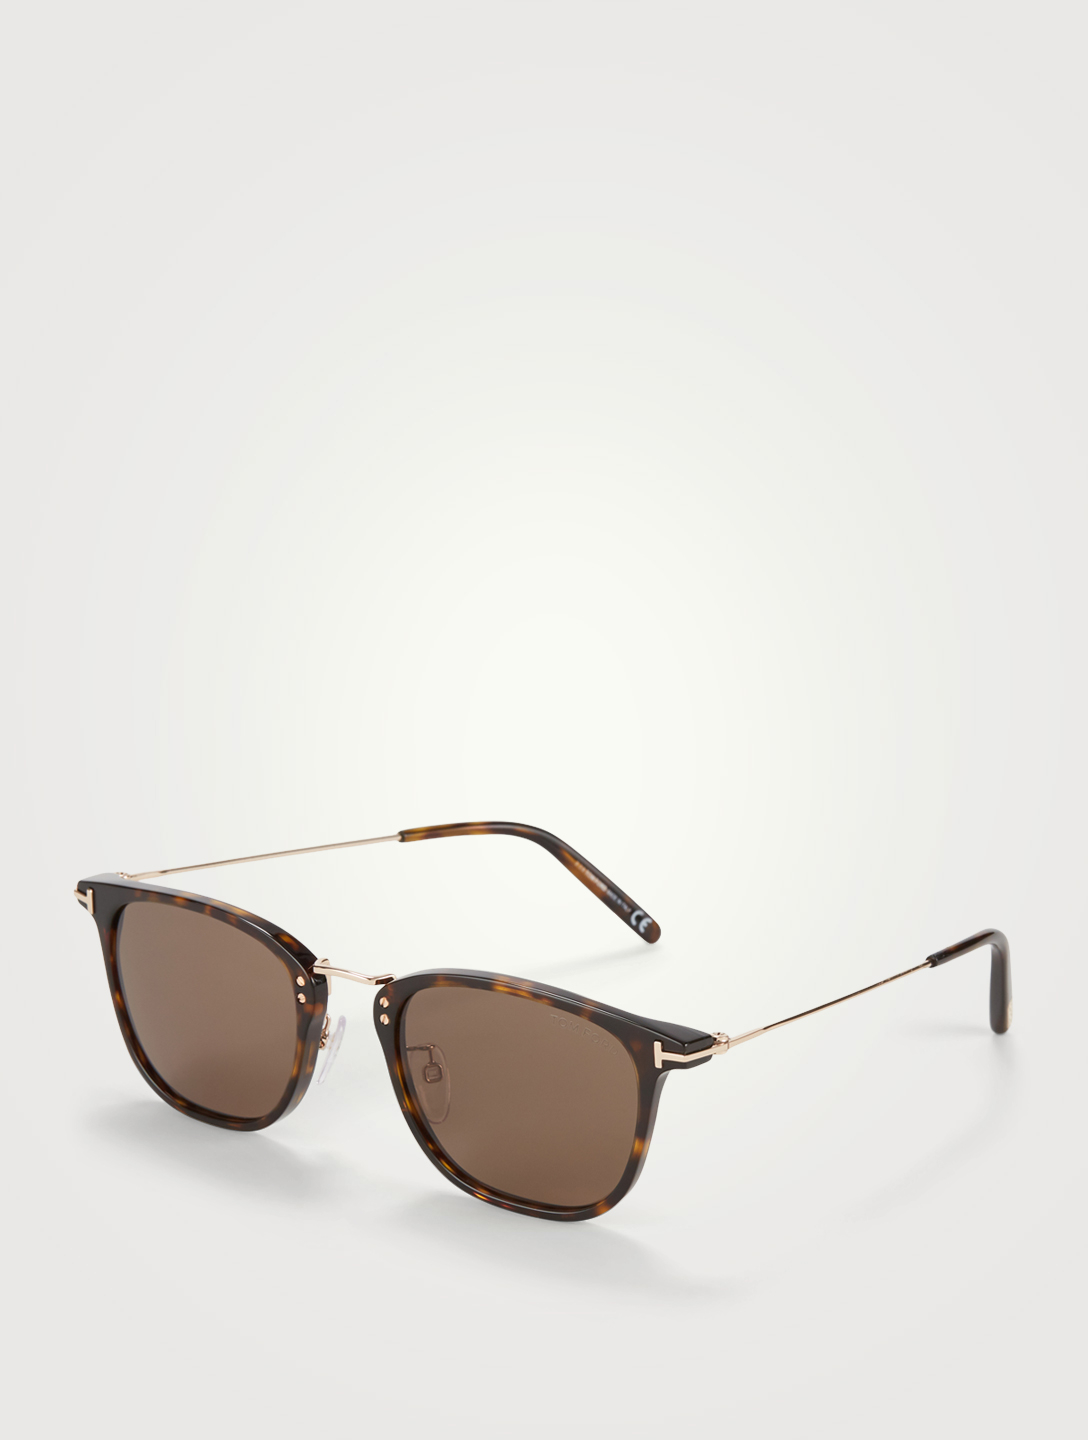 TOM FORD Beau Square Sunglasses Men's Brown